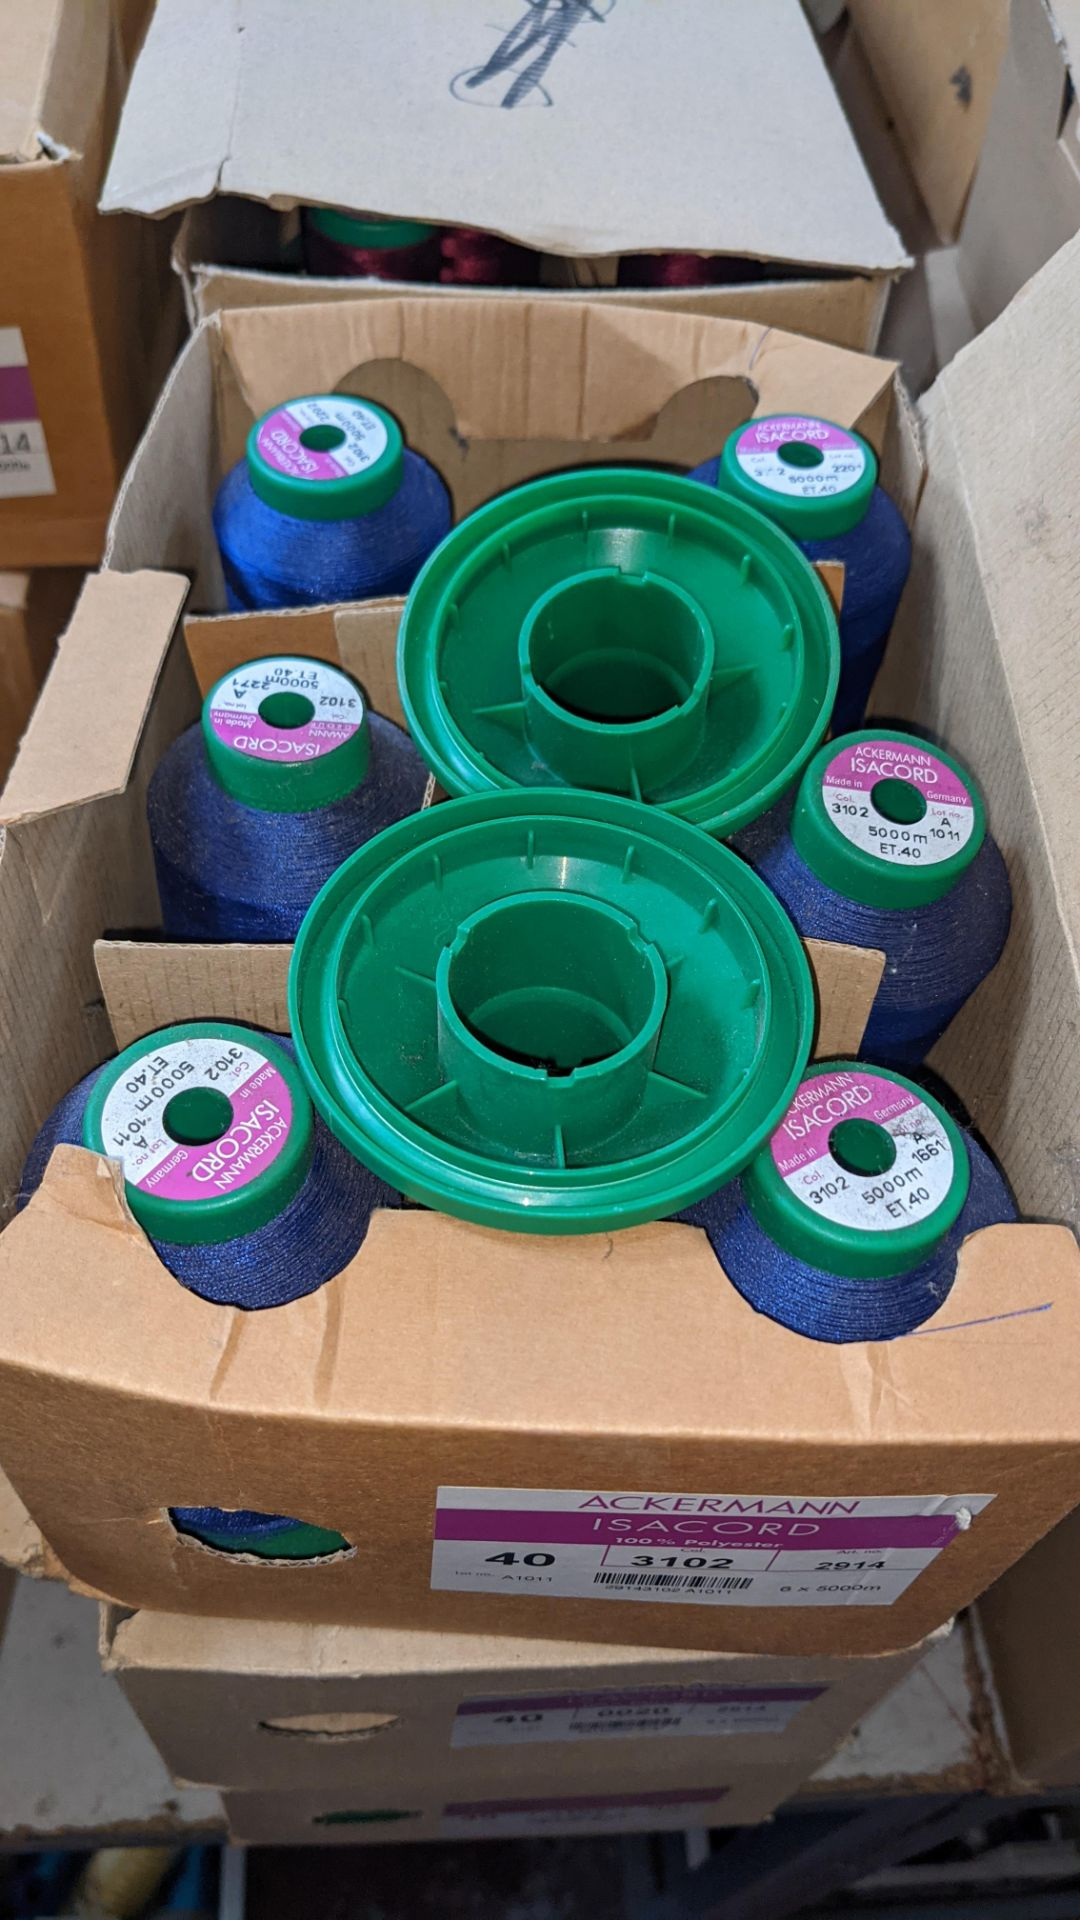 12 boxes of Ackermann Isacord (40) polyester thread - Image 4 of 9